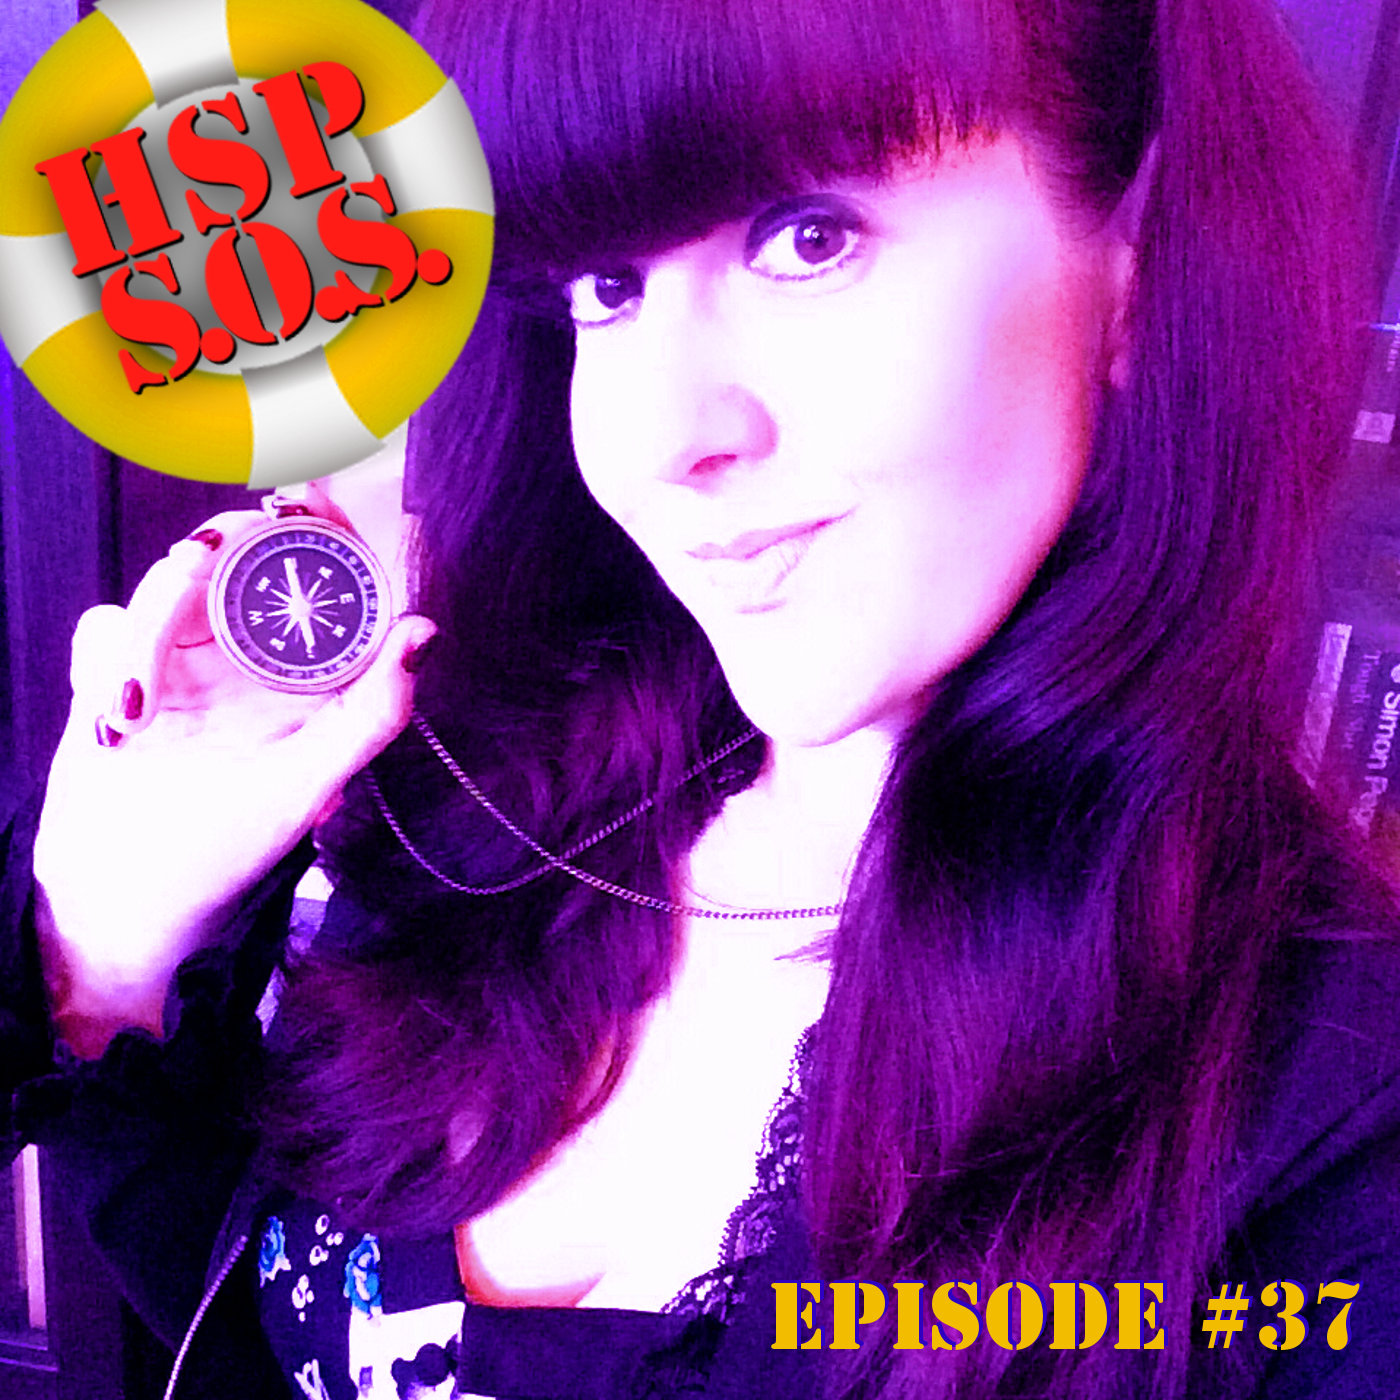 HSP SOS #37 - Addiction & Highly Sensitive Persons